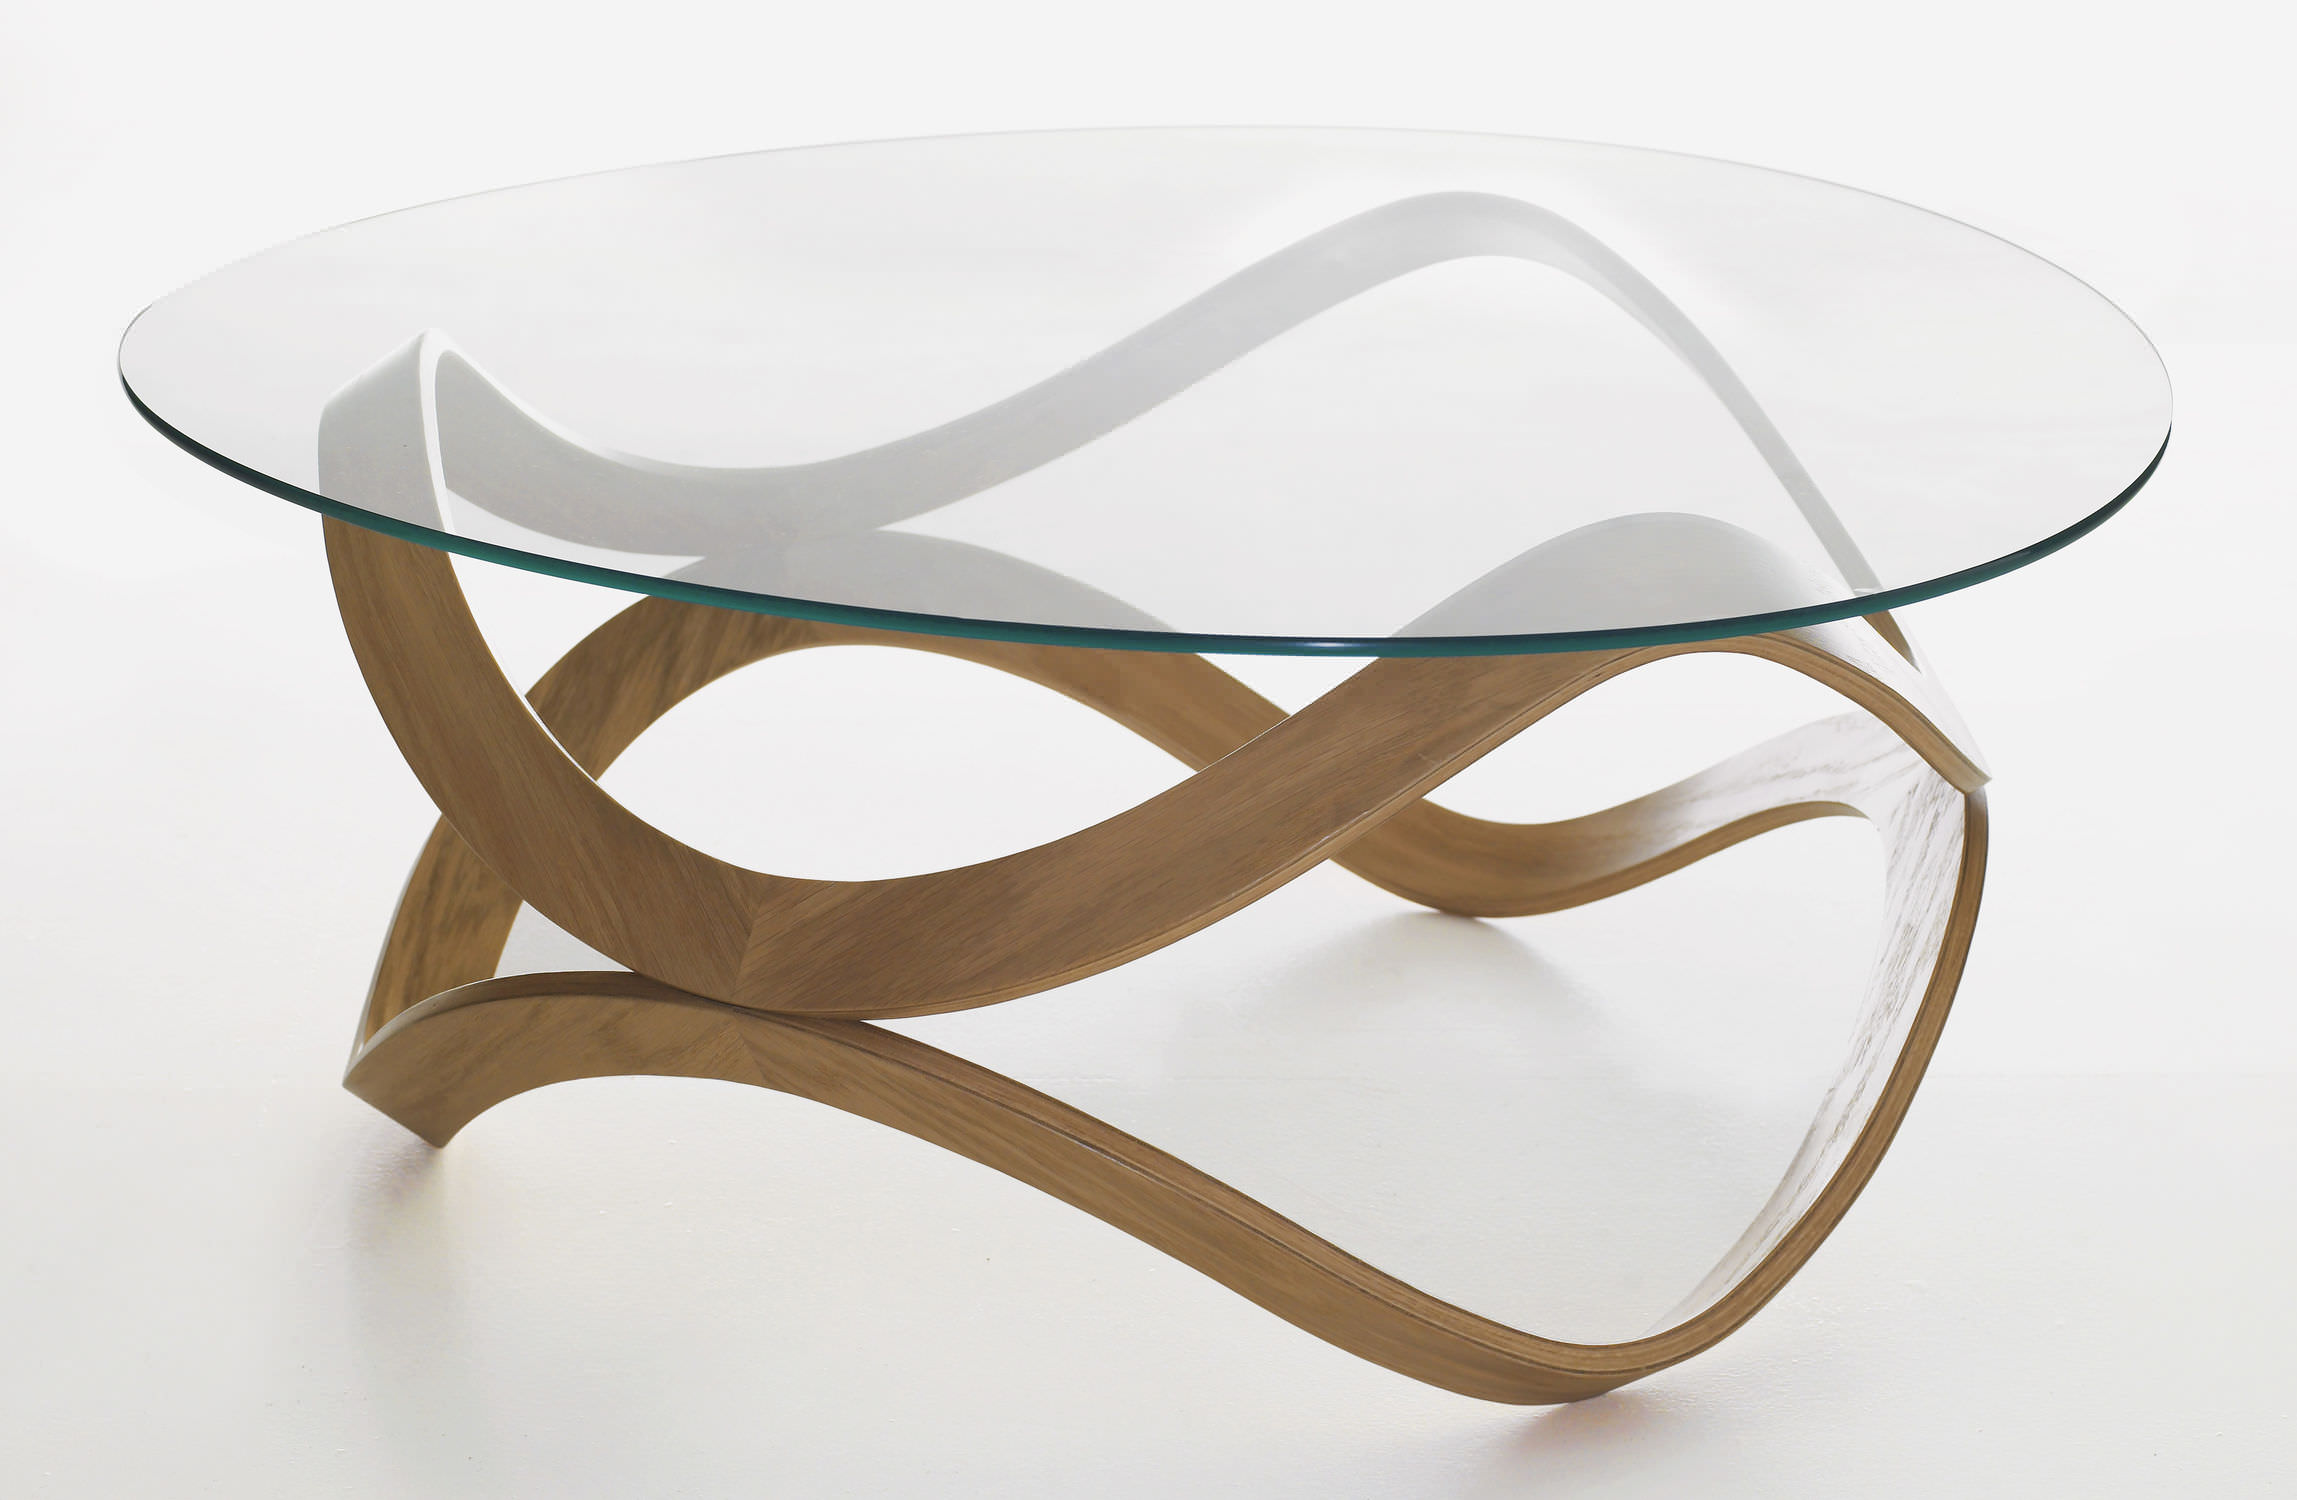 Contemporary Coffee Tables Glass Fascinating Contemporary Coffee Table  Glass  Oak  Ash  Newtond.sunaga . Design Ideas